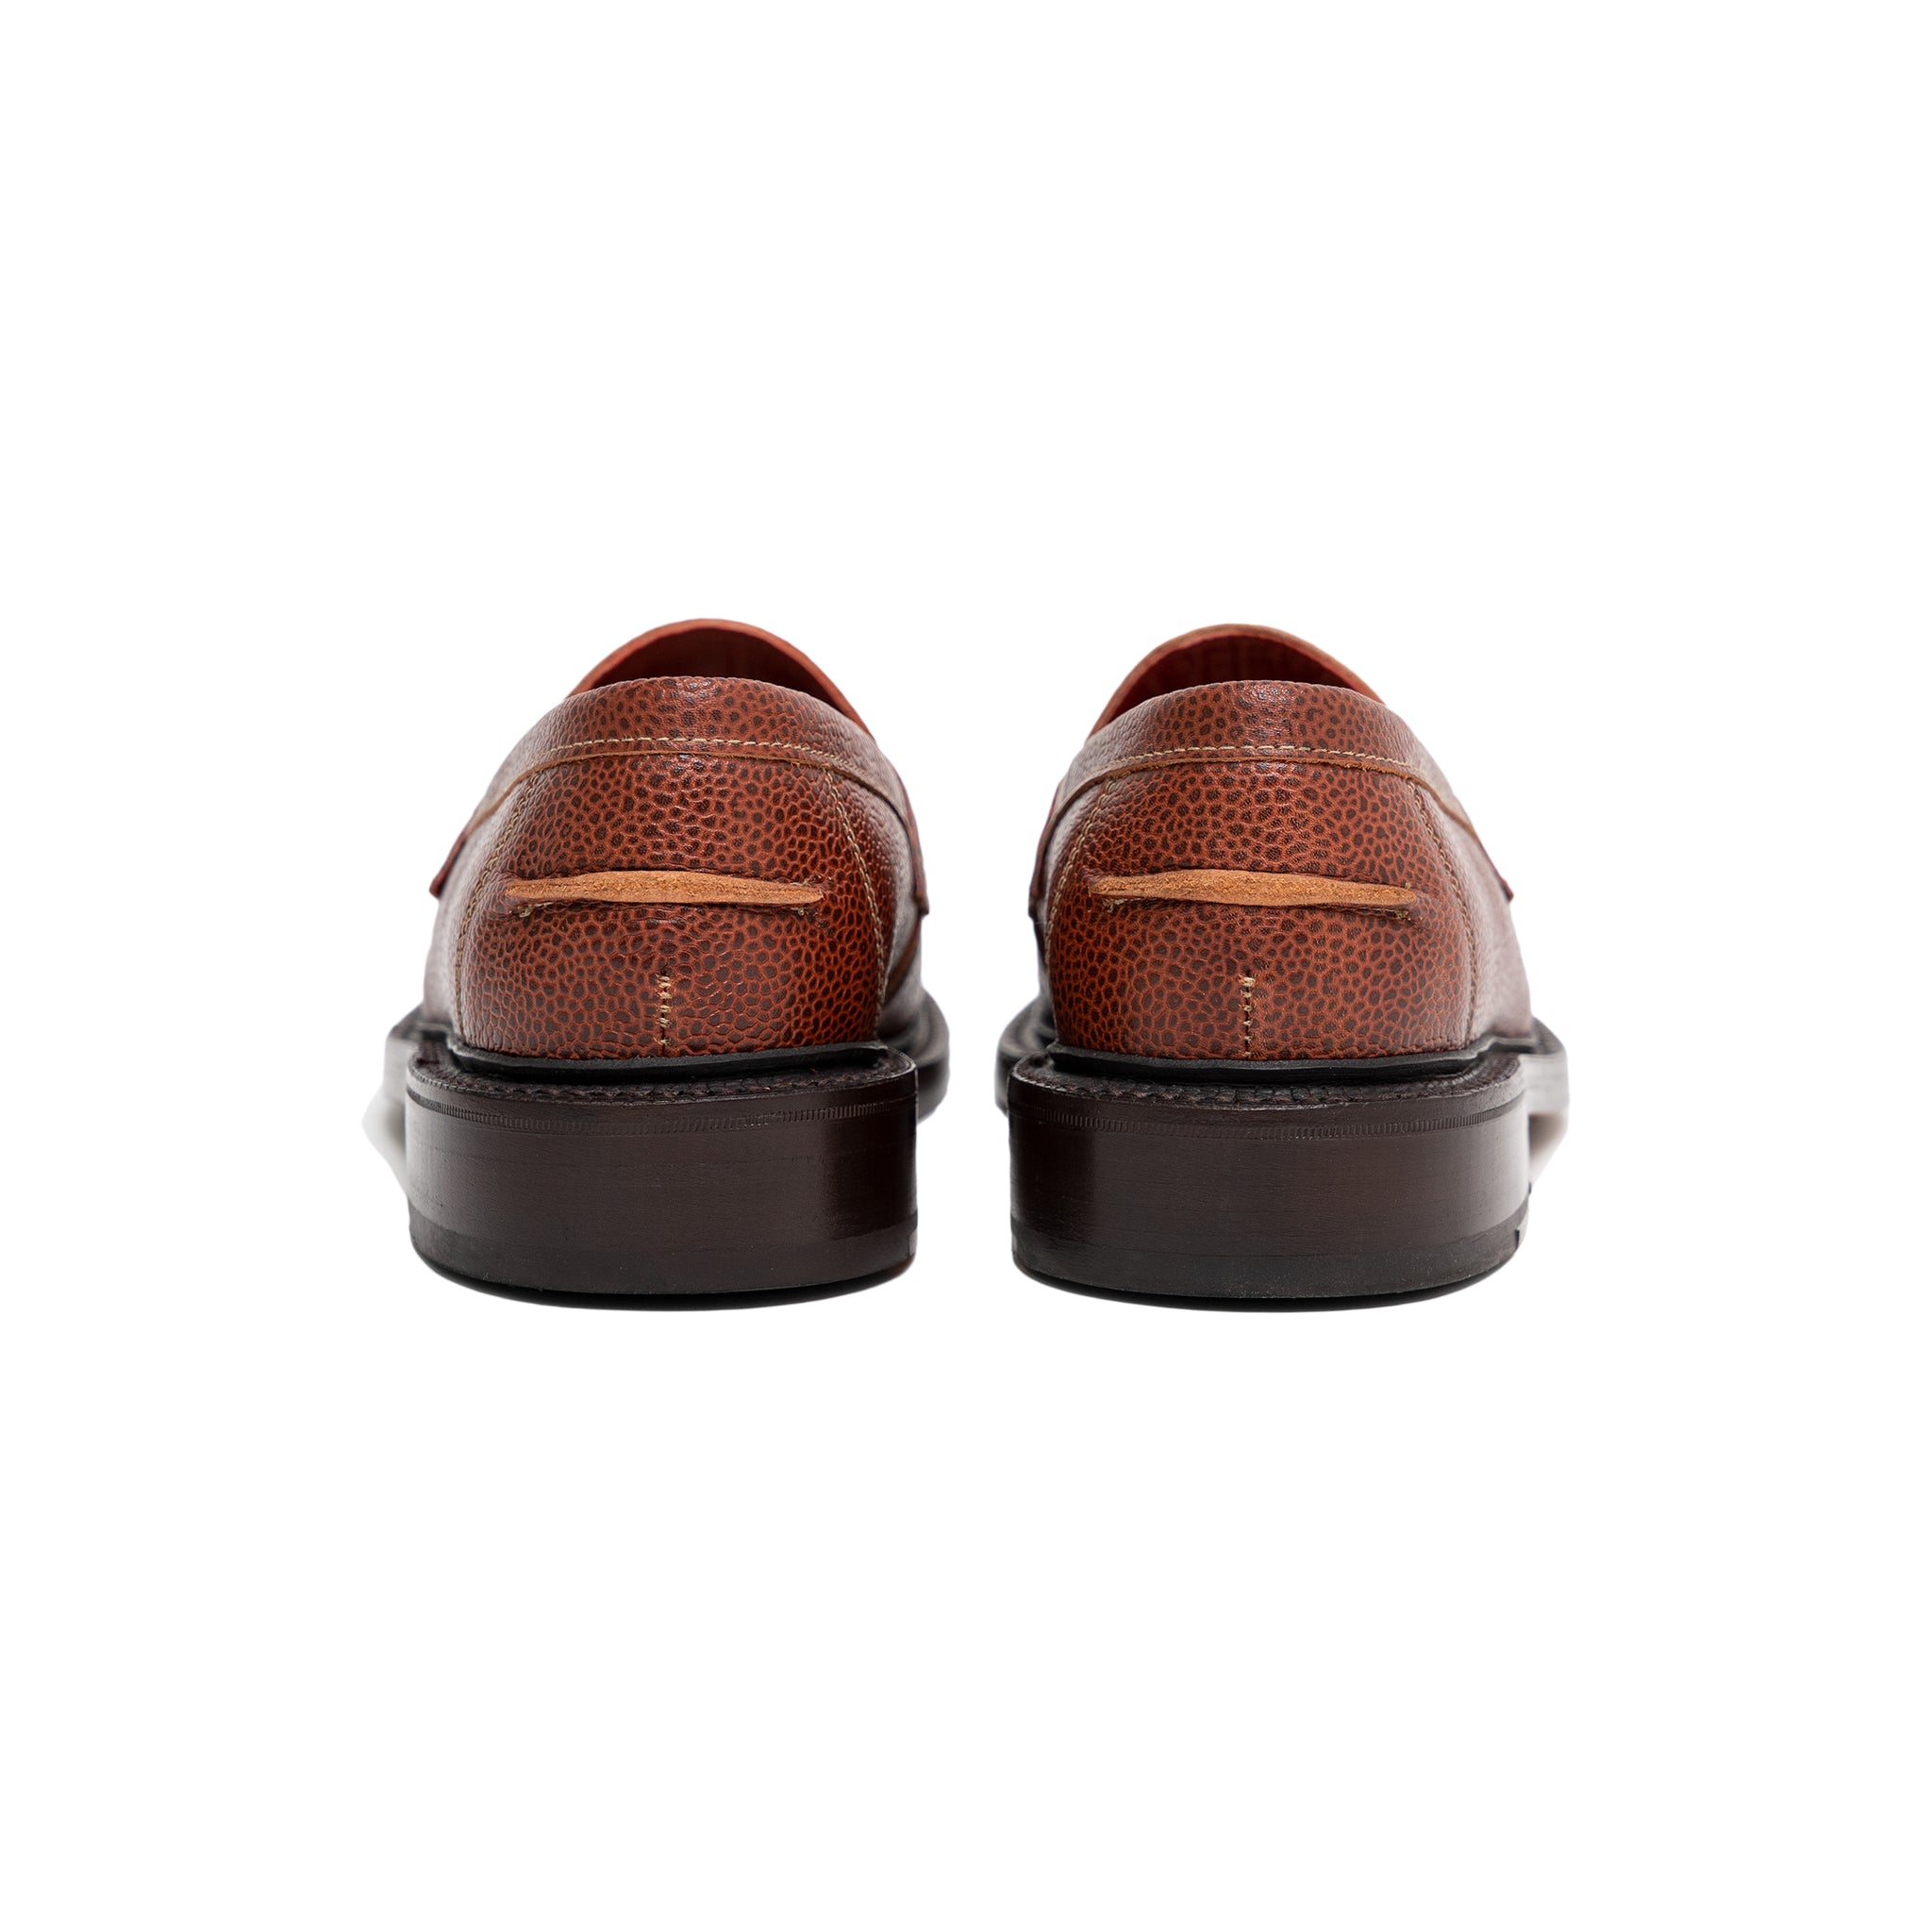 The Clásico Tassel Loafer, Chestnut Pebble